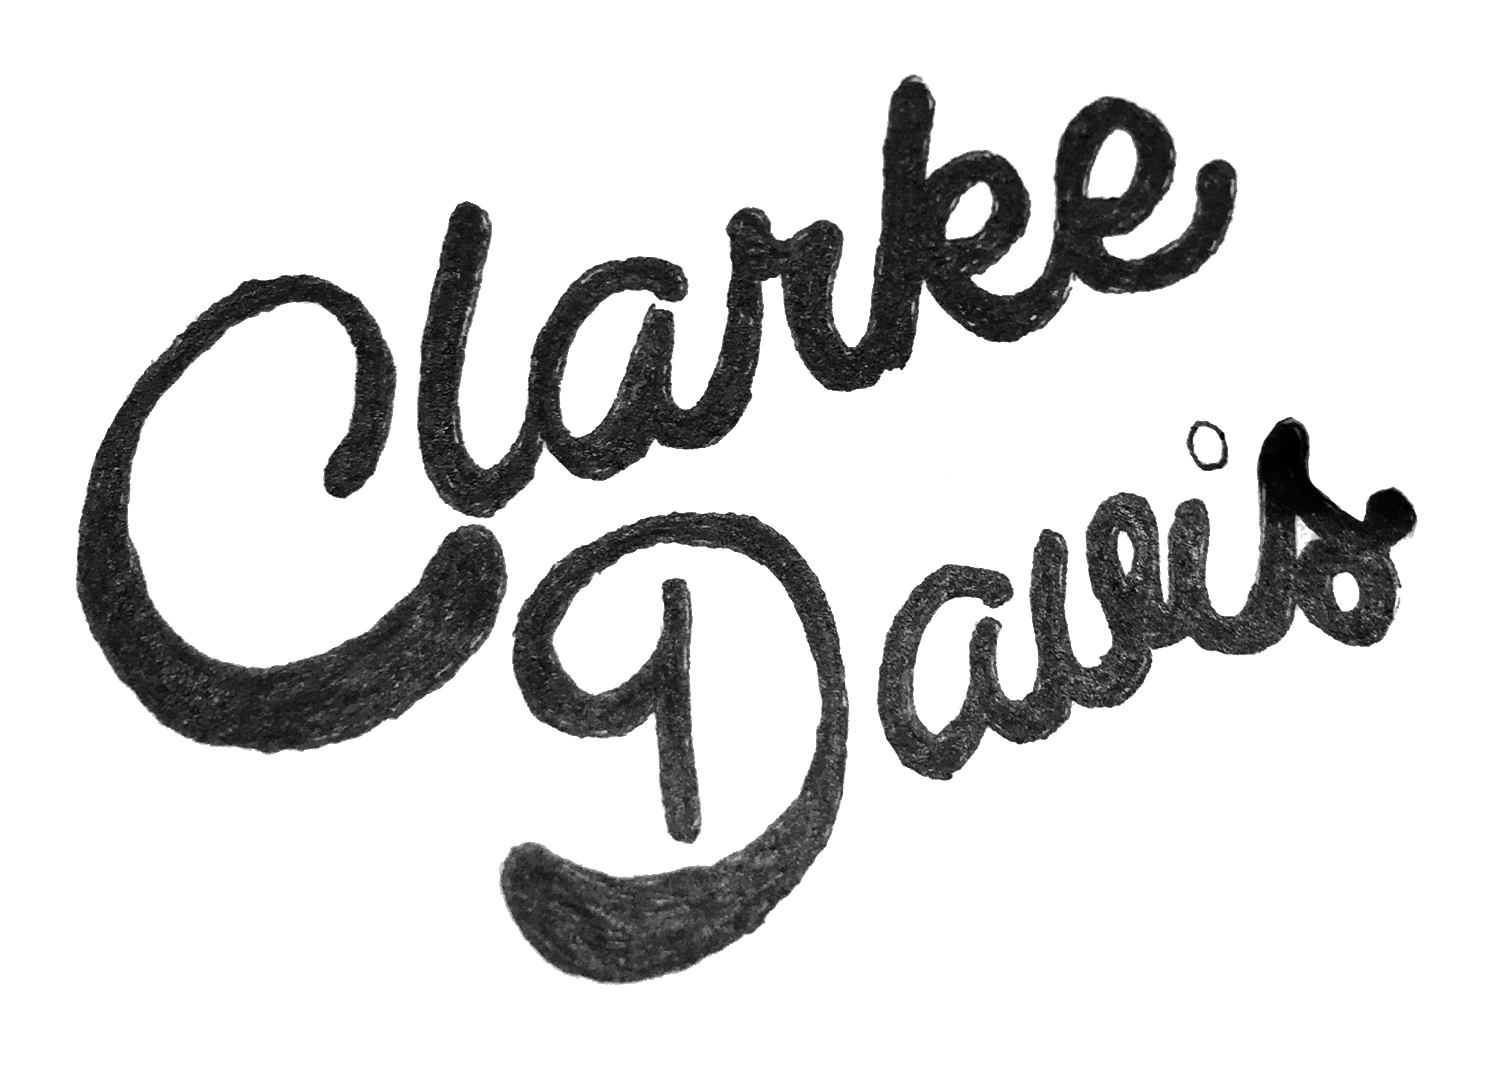 Clarke Davis Graphic Design & Photography